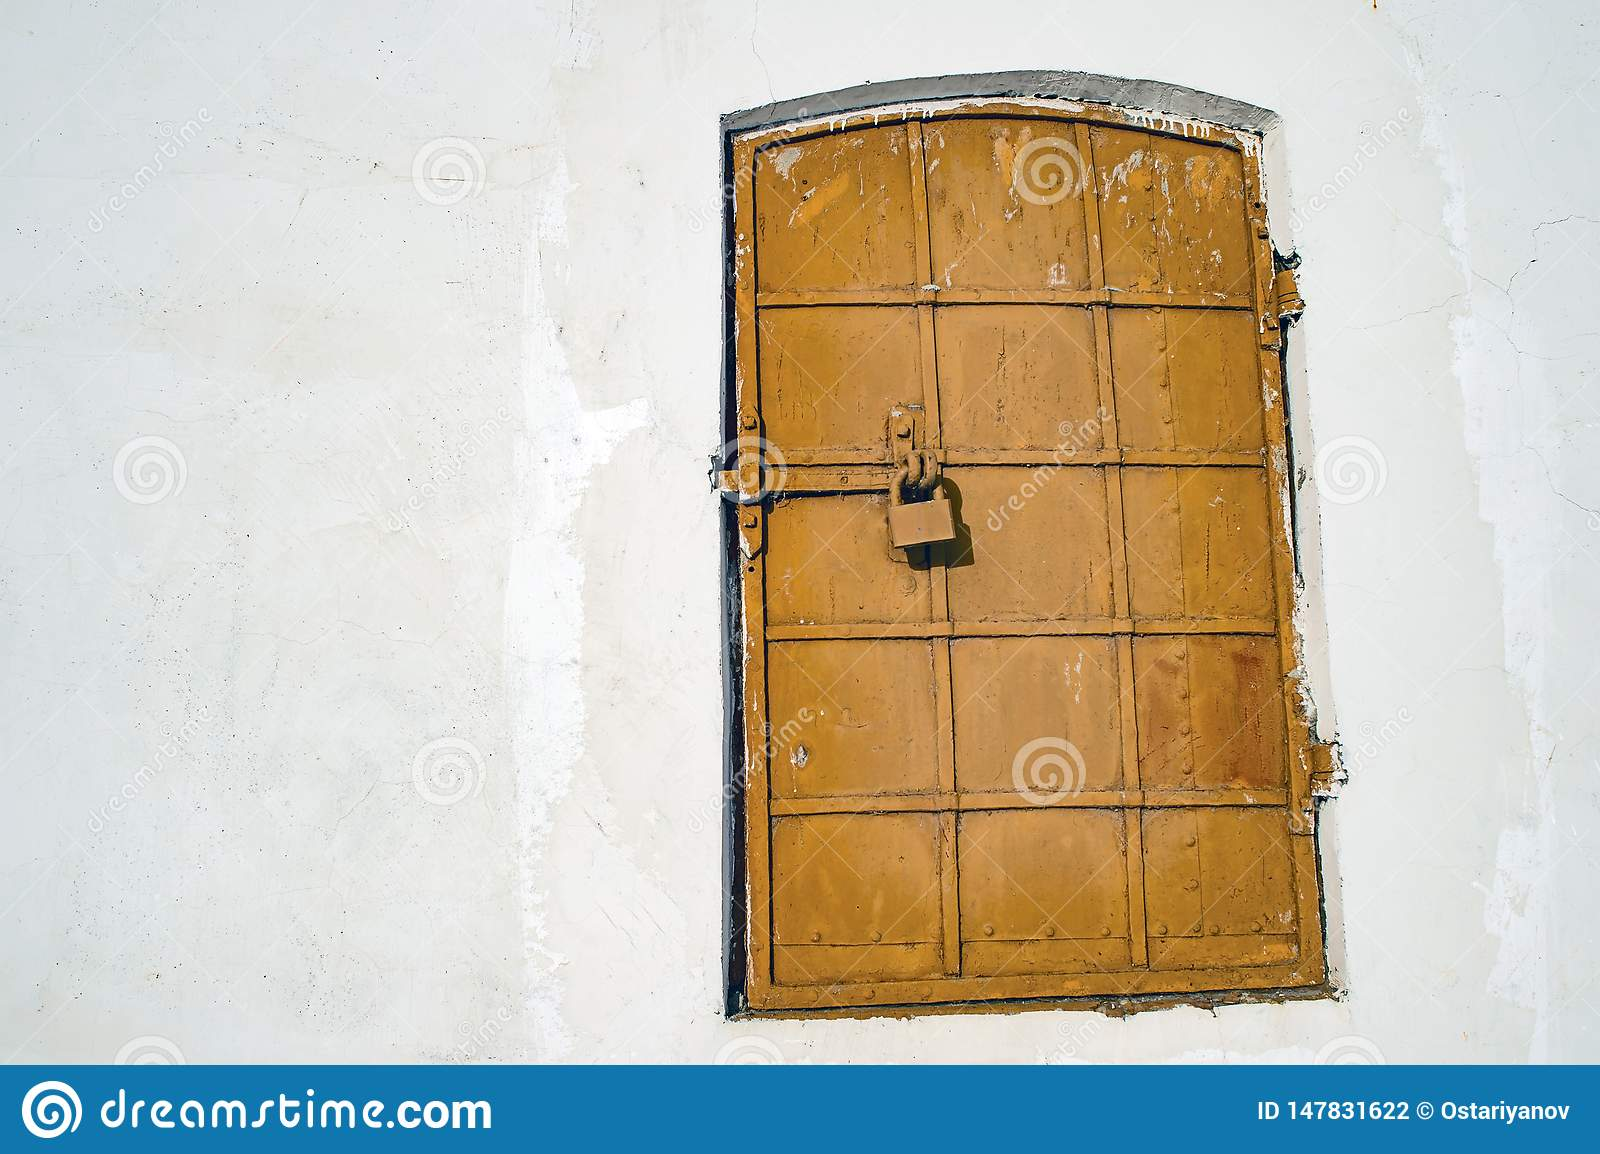 Antique iron-bound window with a latch. Background